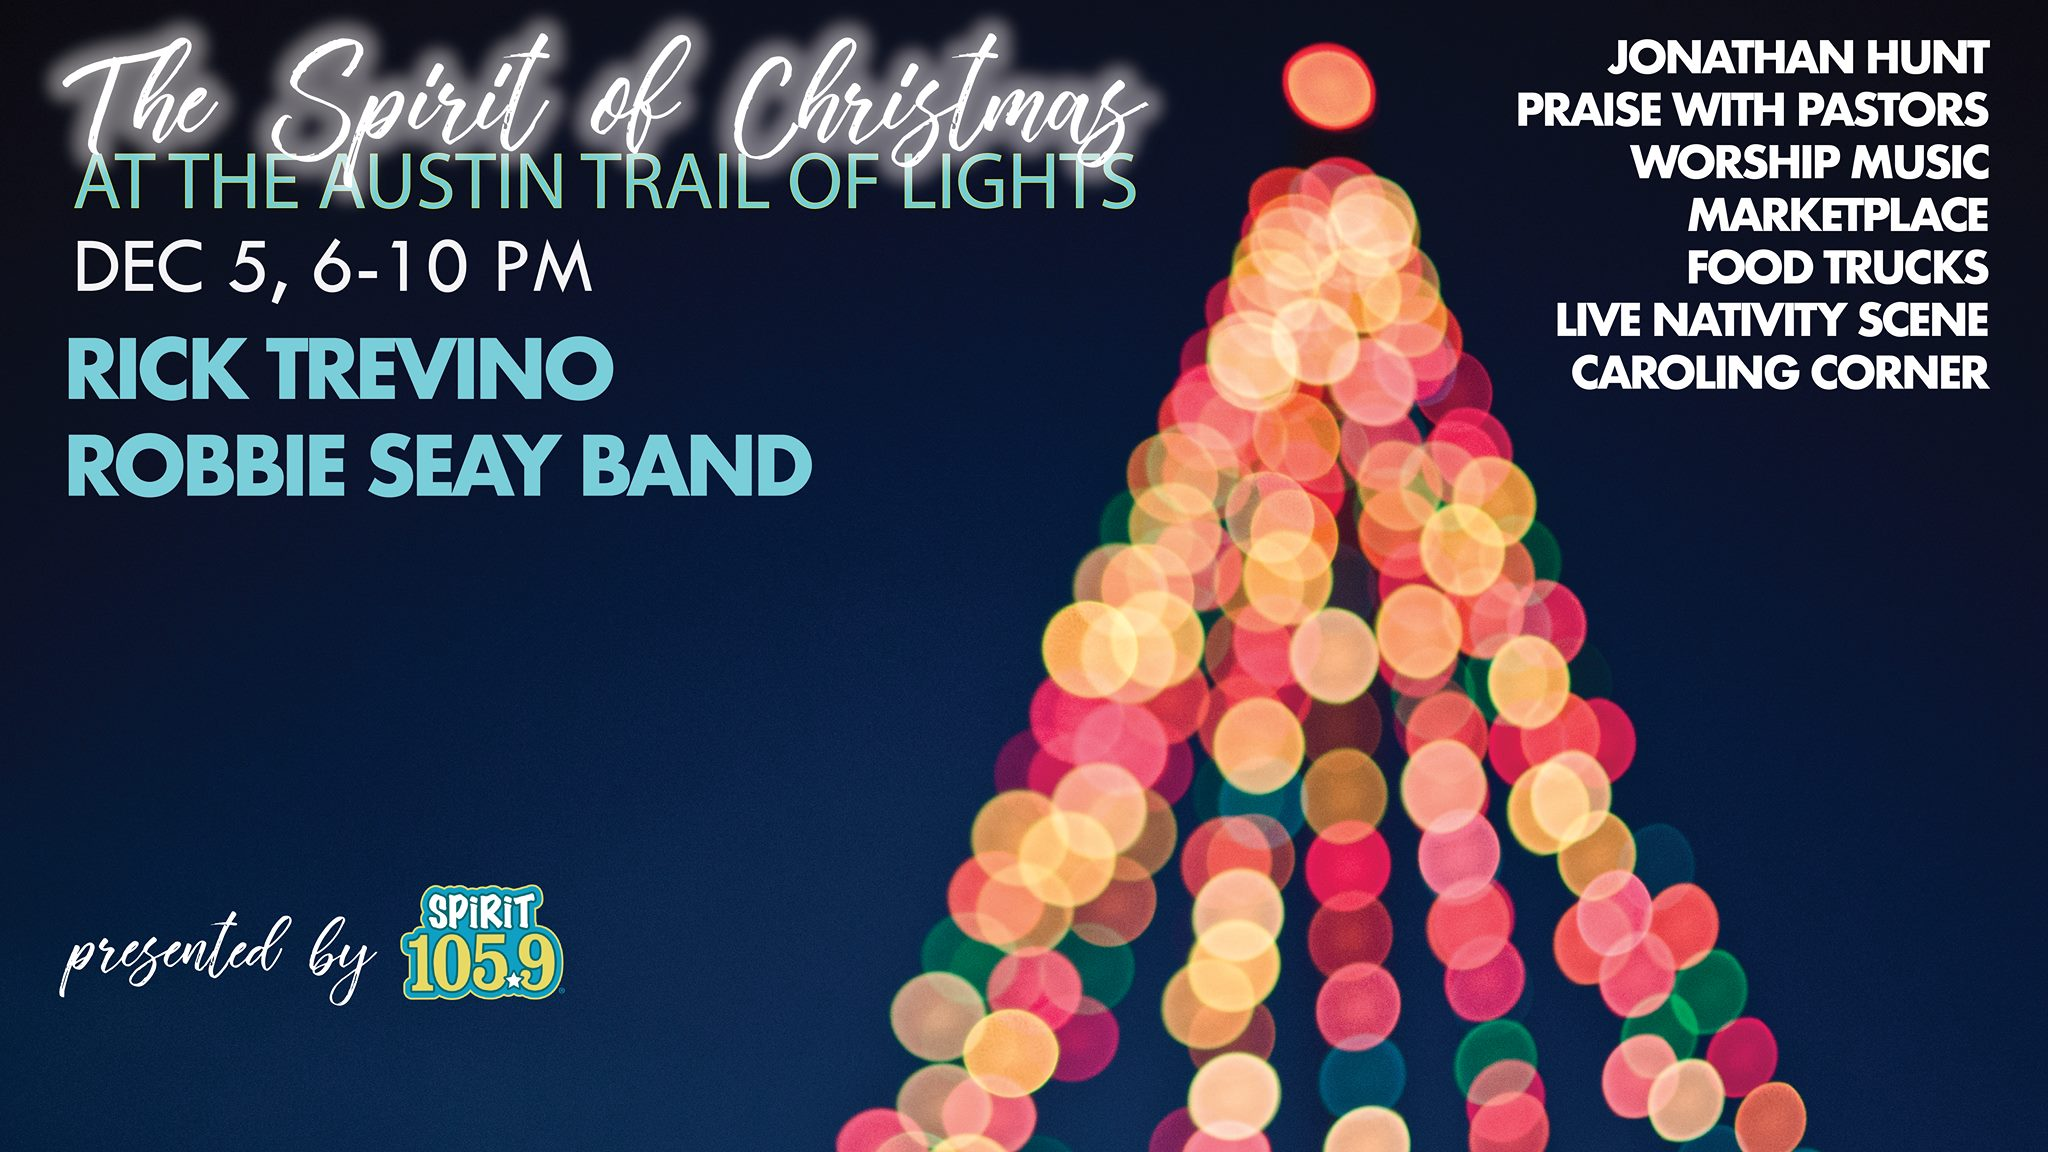 ENTER TO WIN! 2 VIP tickets to the SPIRIT of Christmas at Austin Trail of Lights